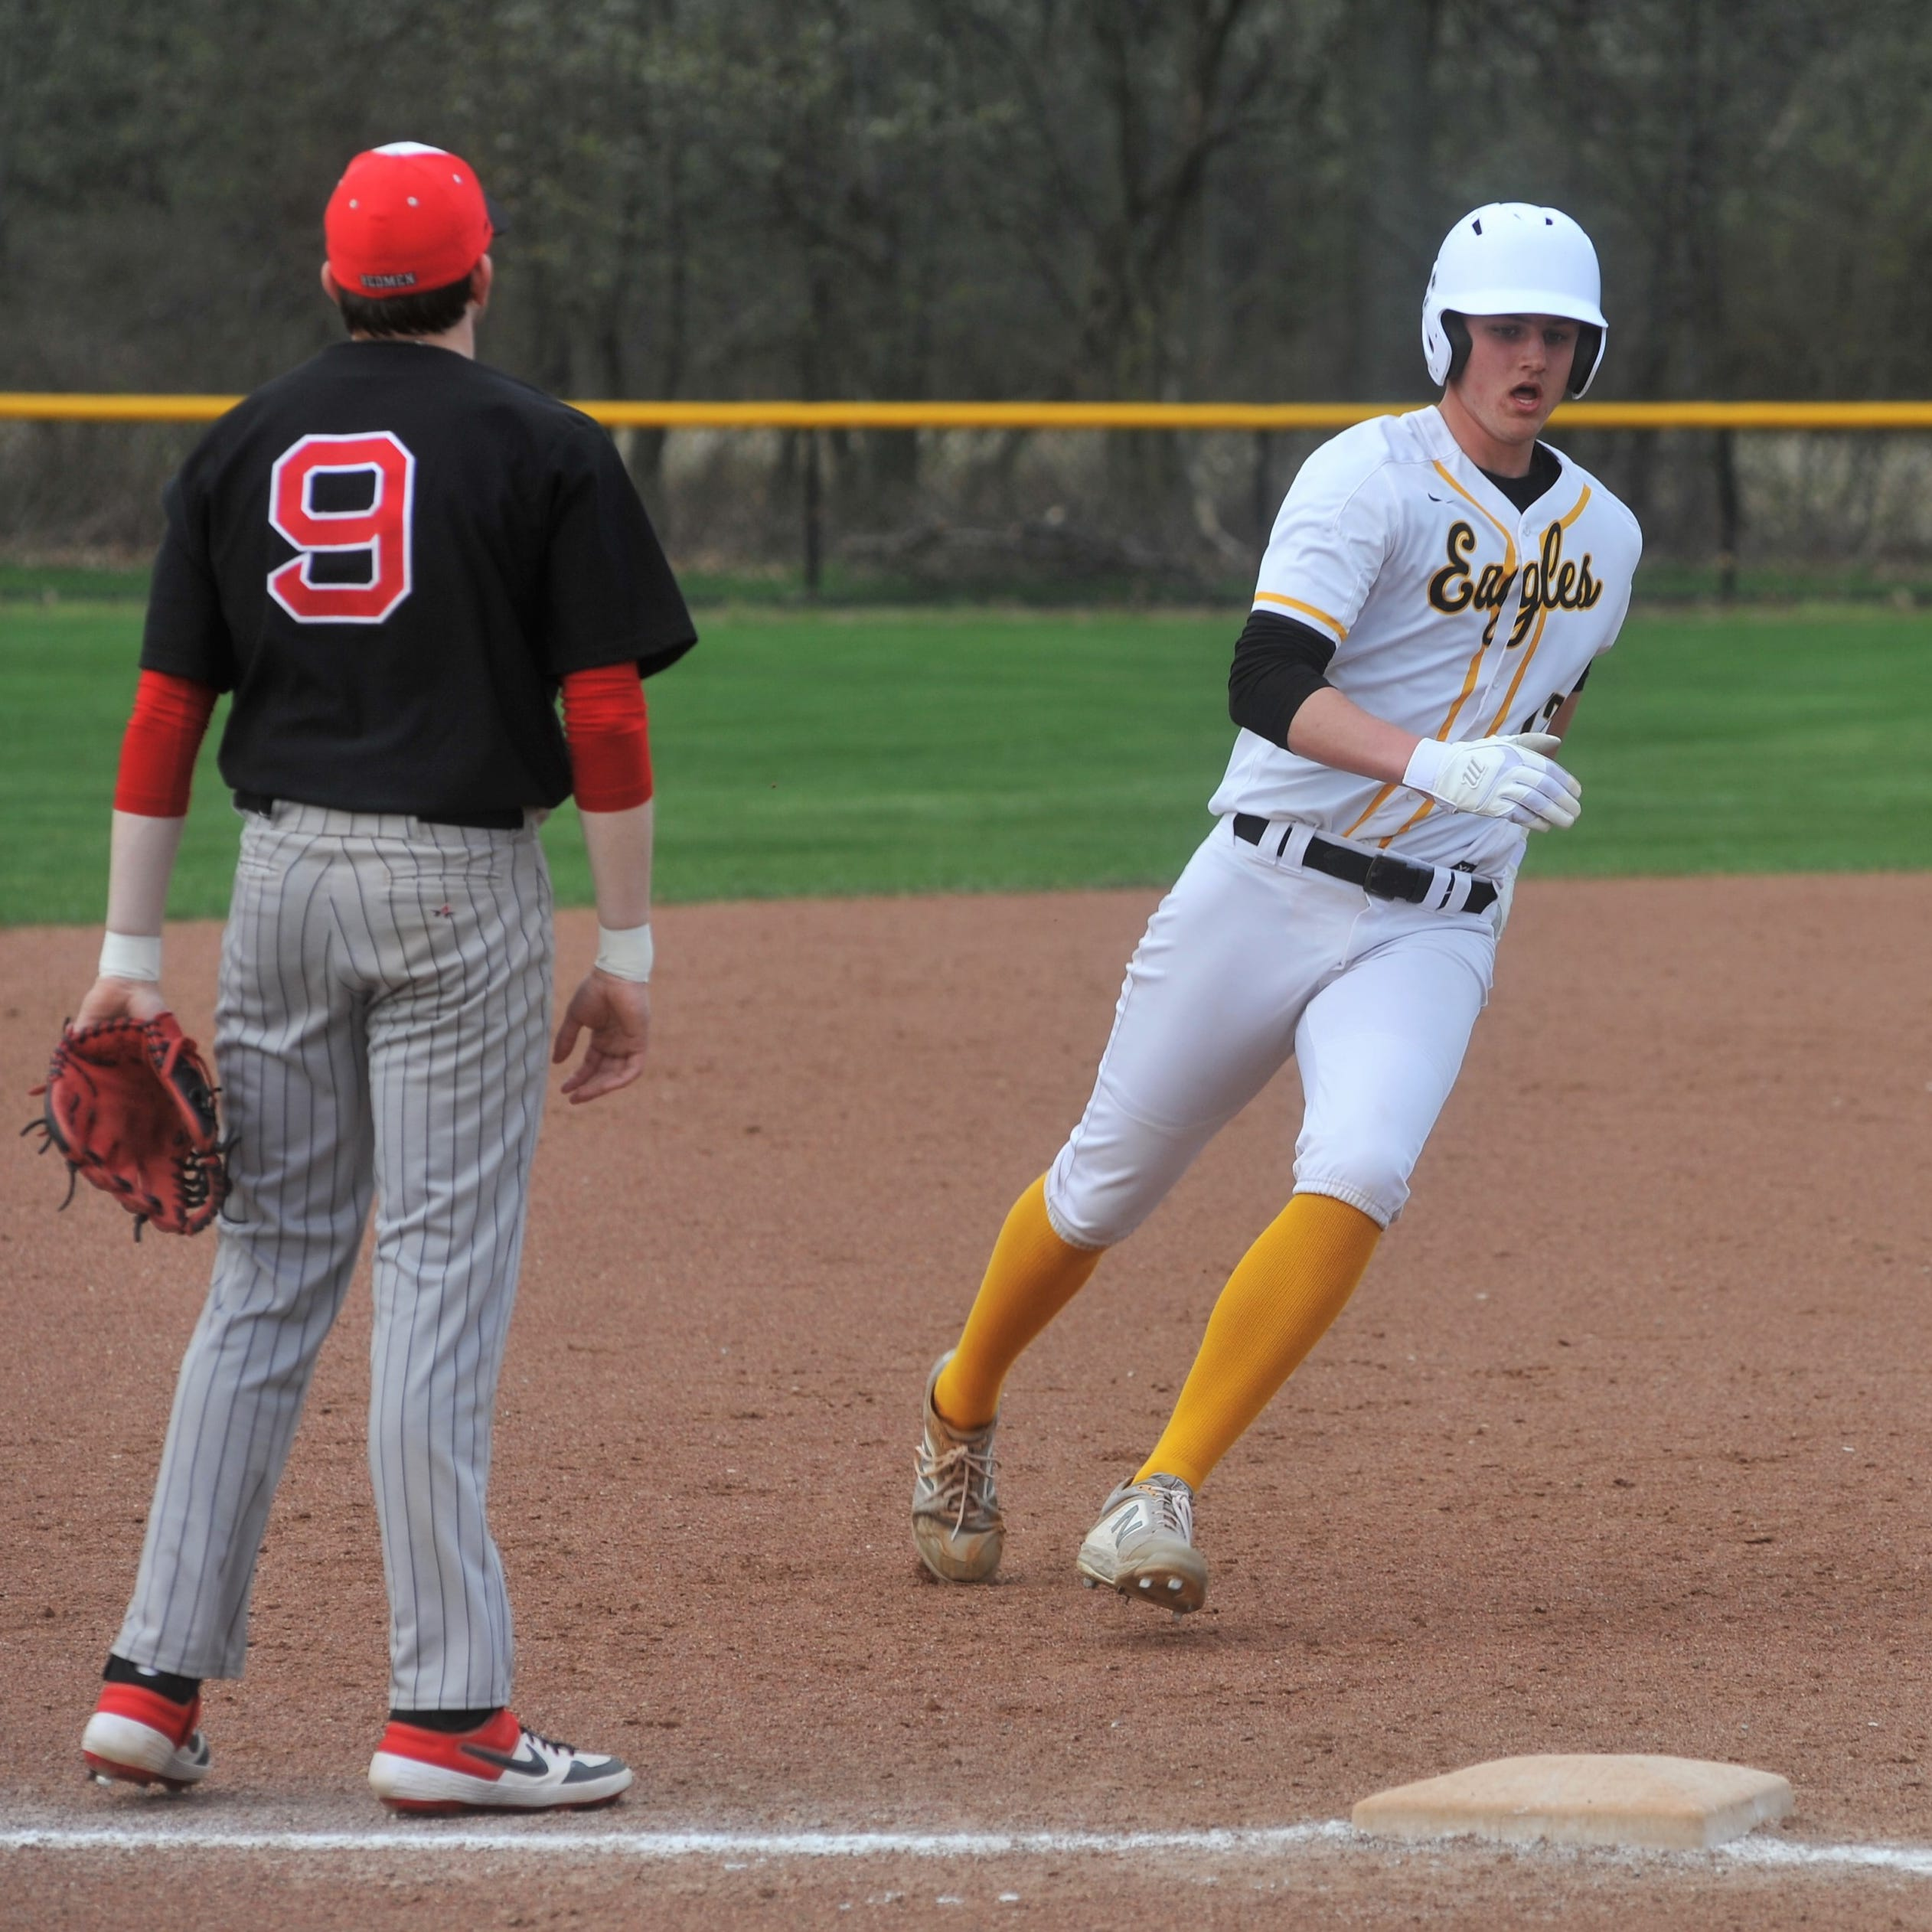 Top spot up for grabs in Crawford County baseball power rankings